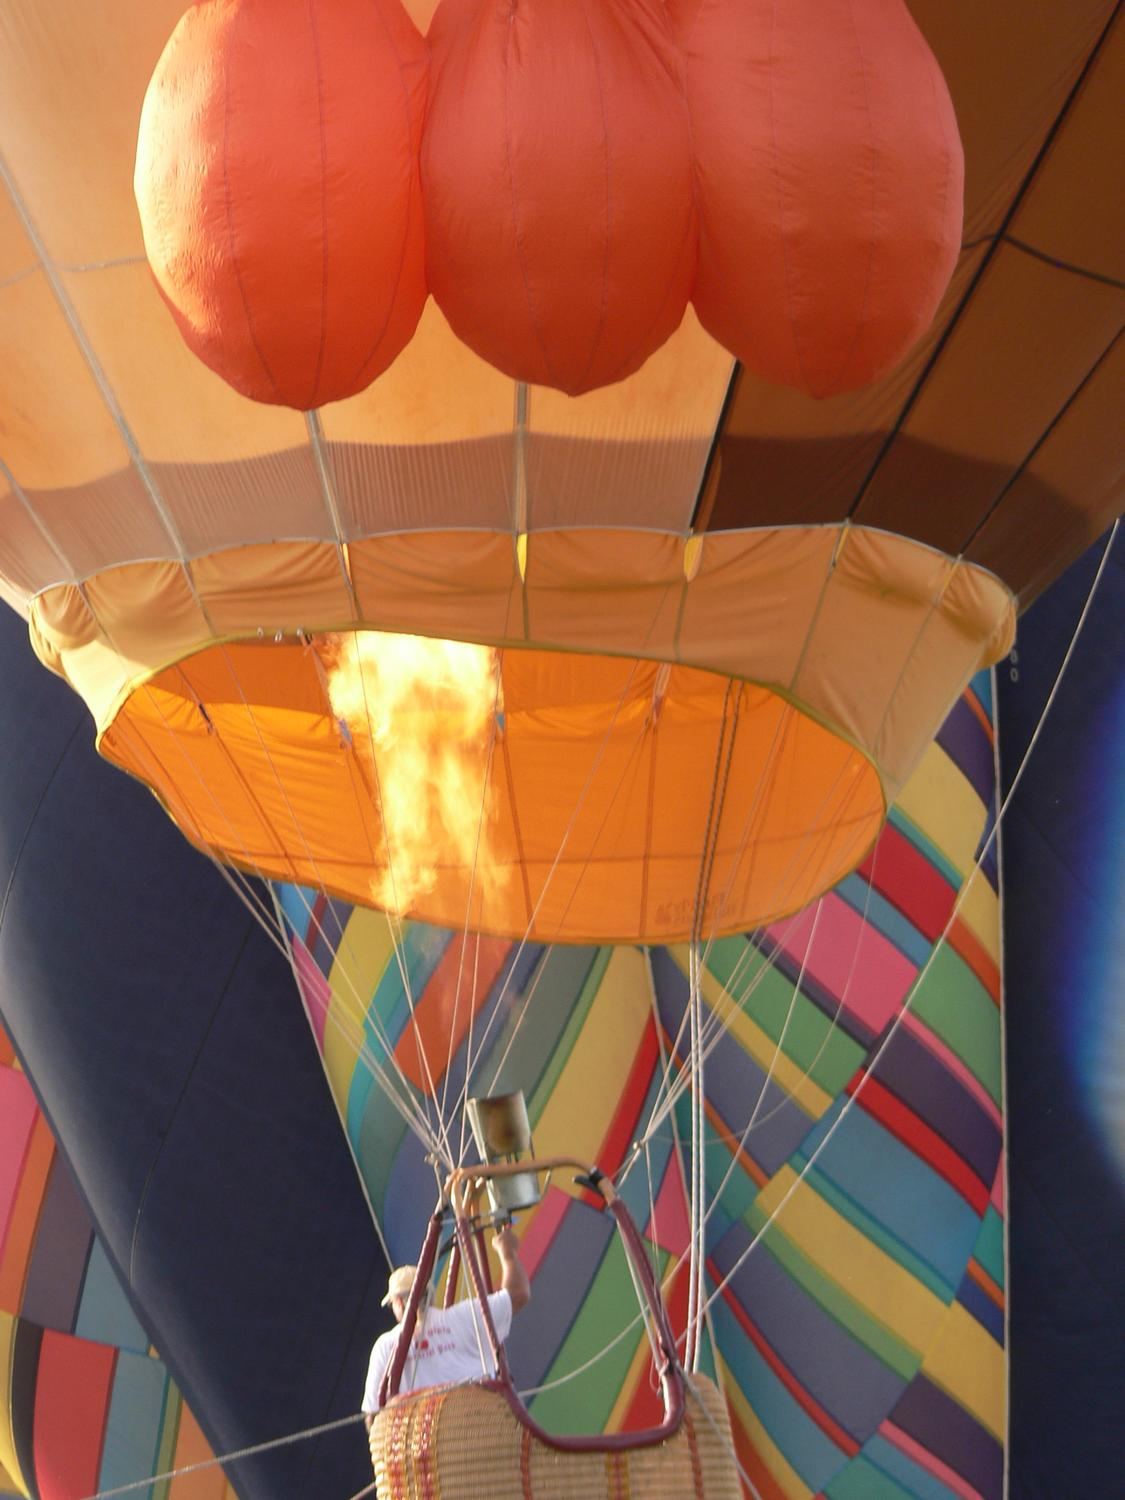 The fire under the balloon - by Marilyn Karp - Under the balloon - Tony Karp, design, art, photography, techno-impressionist, techno-impressionism, aerial photography , drone , drones , dji , mavic pro , video , 3D printing - Books -